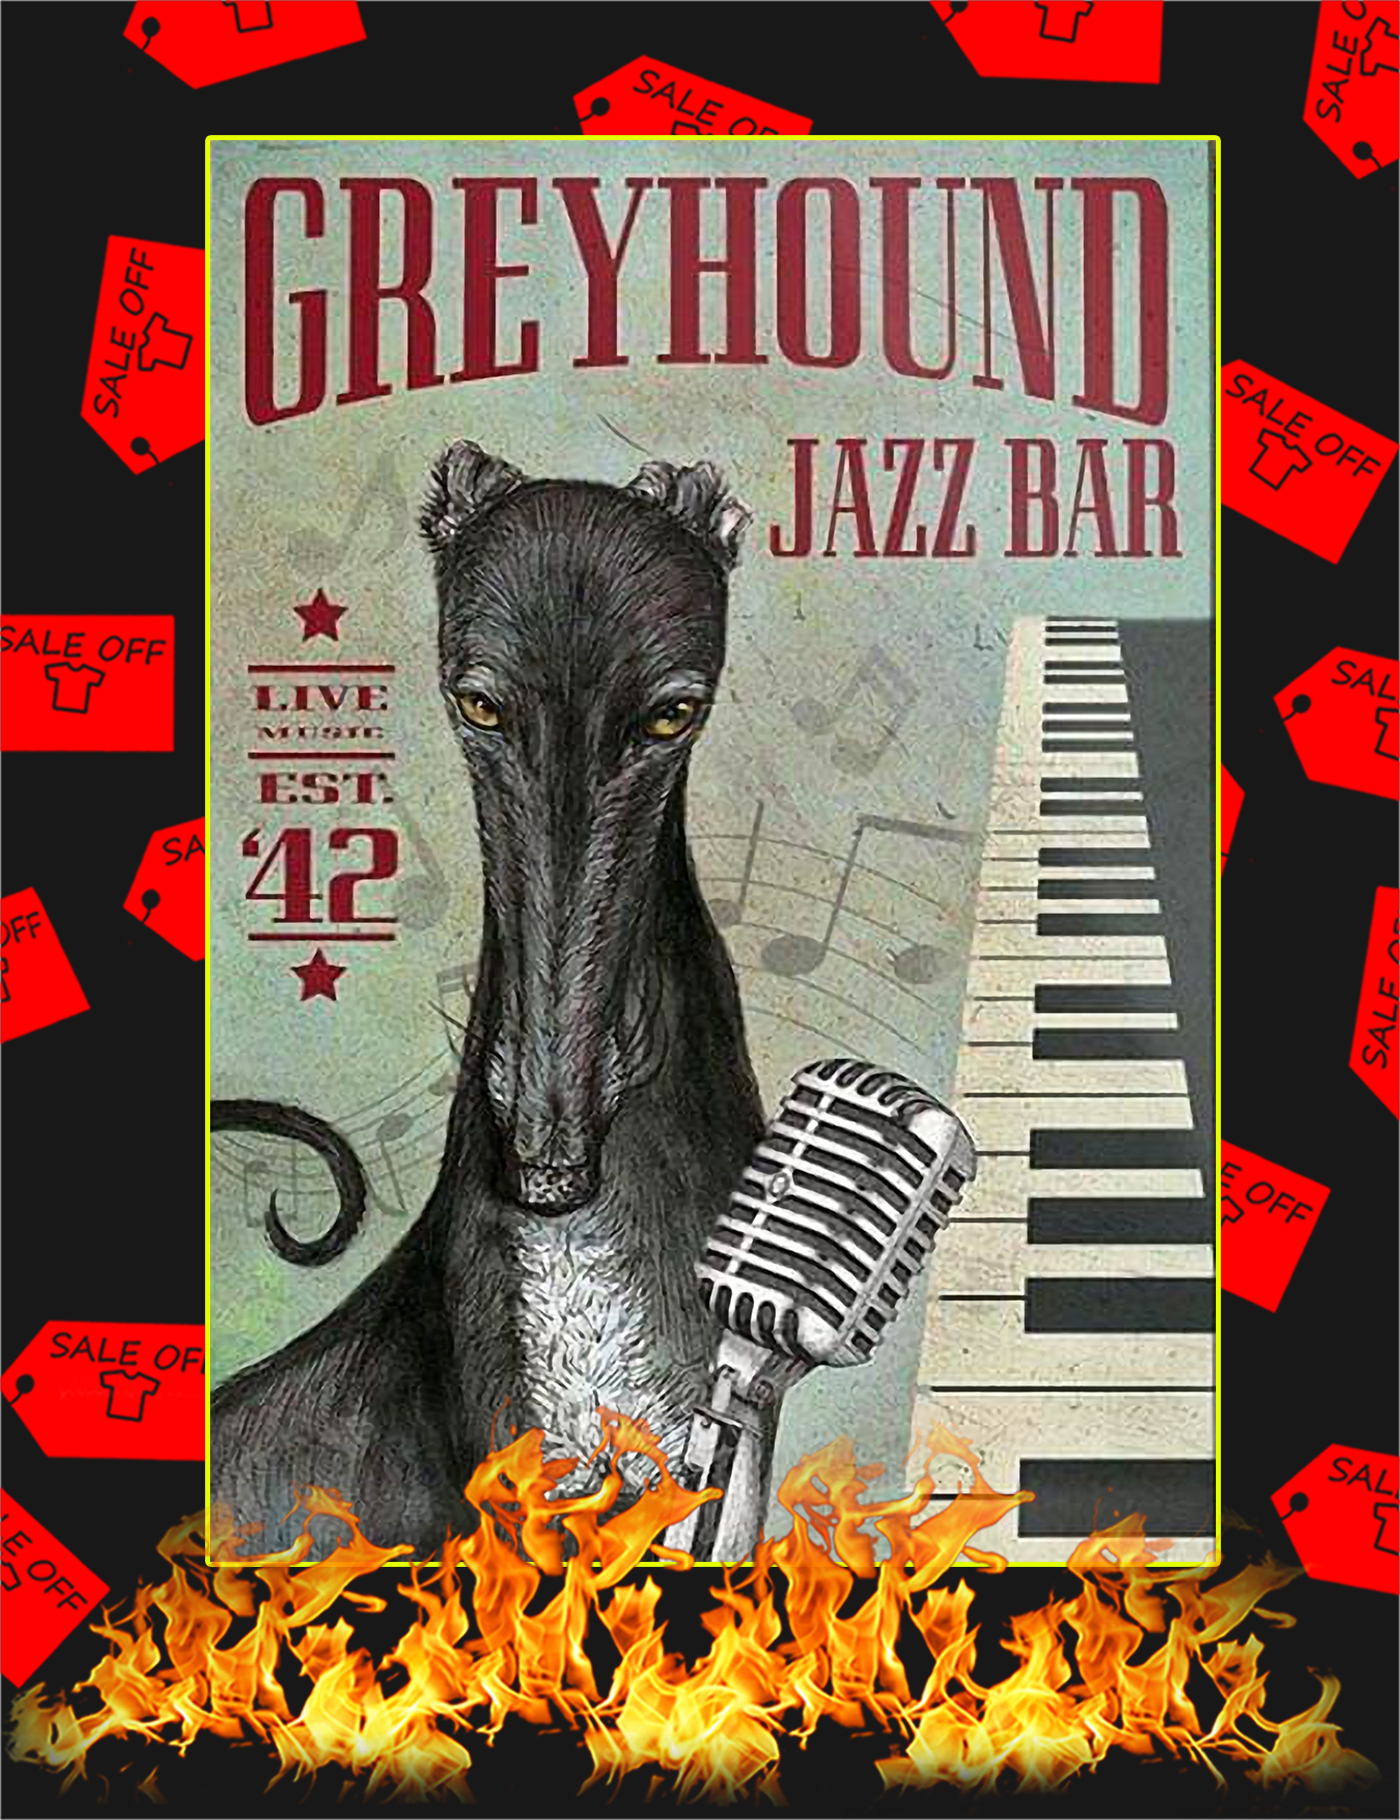 Greyhound Jazz Bar Poster - A2